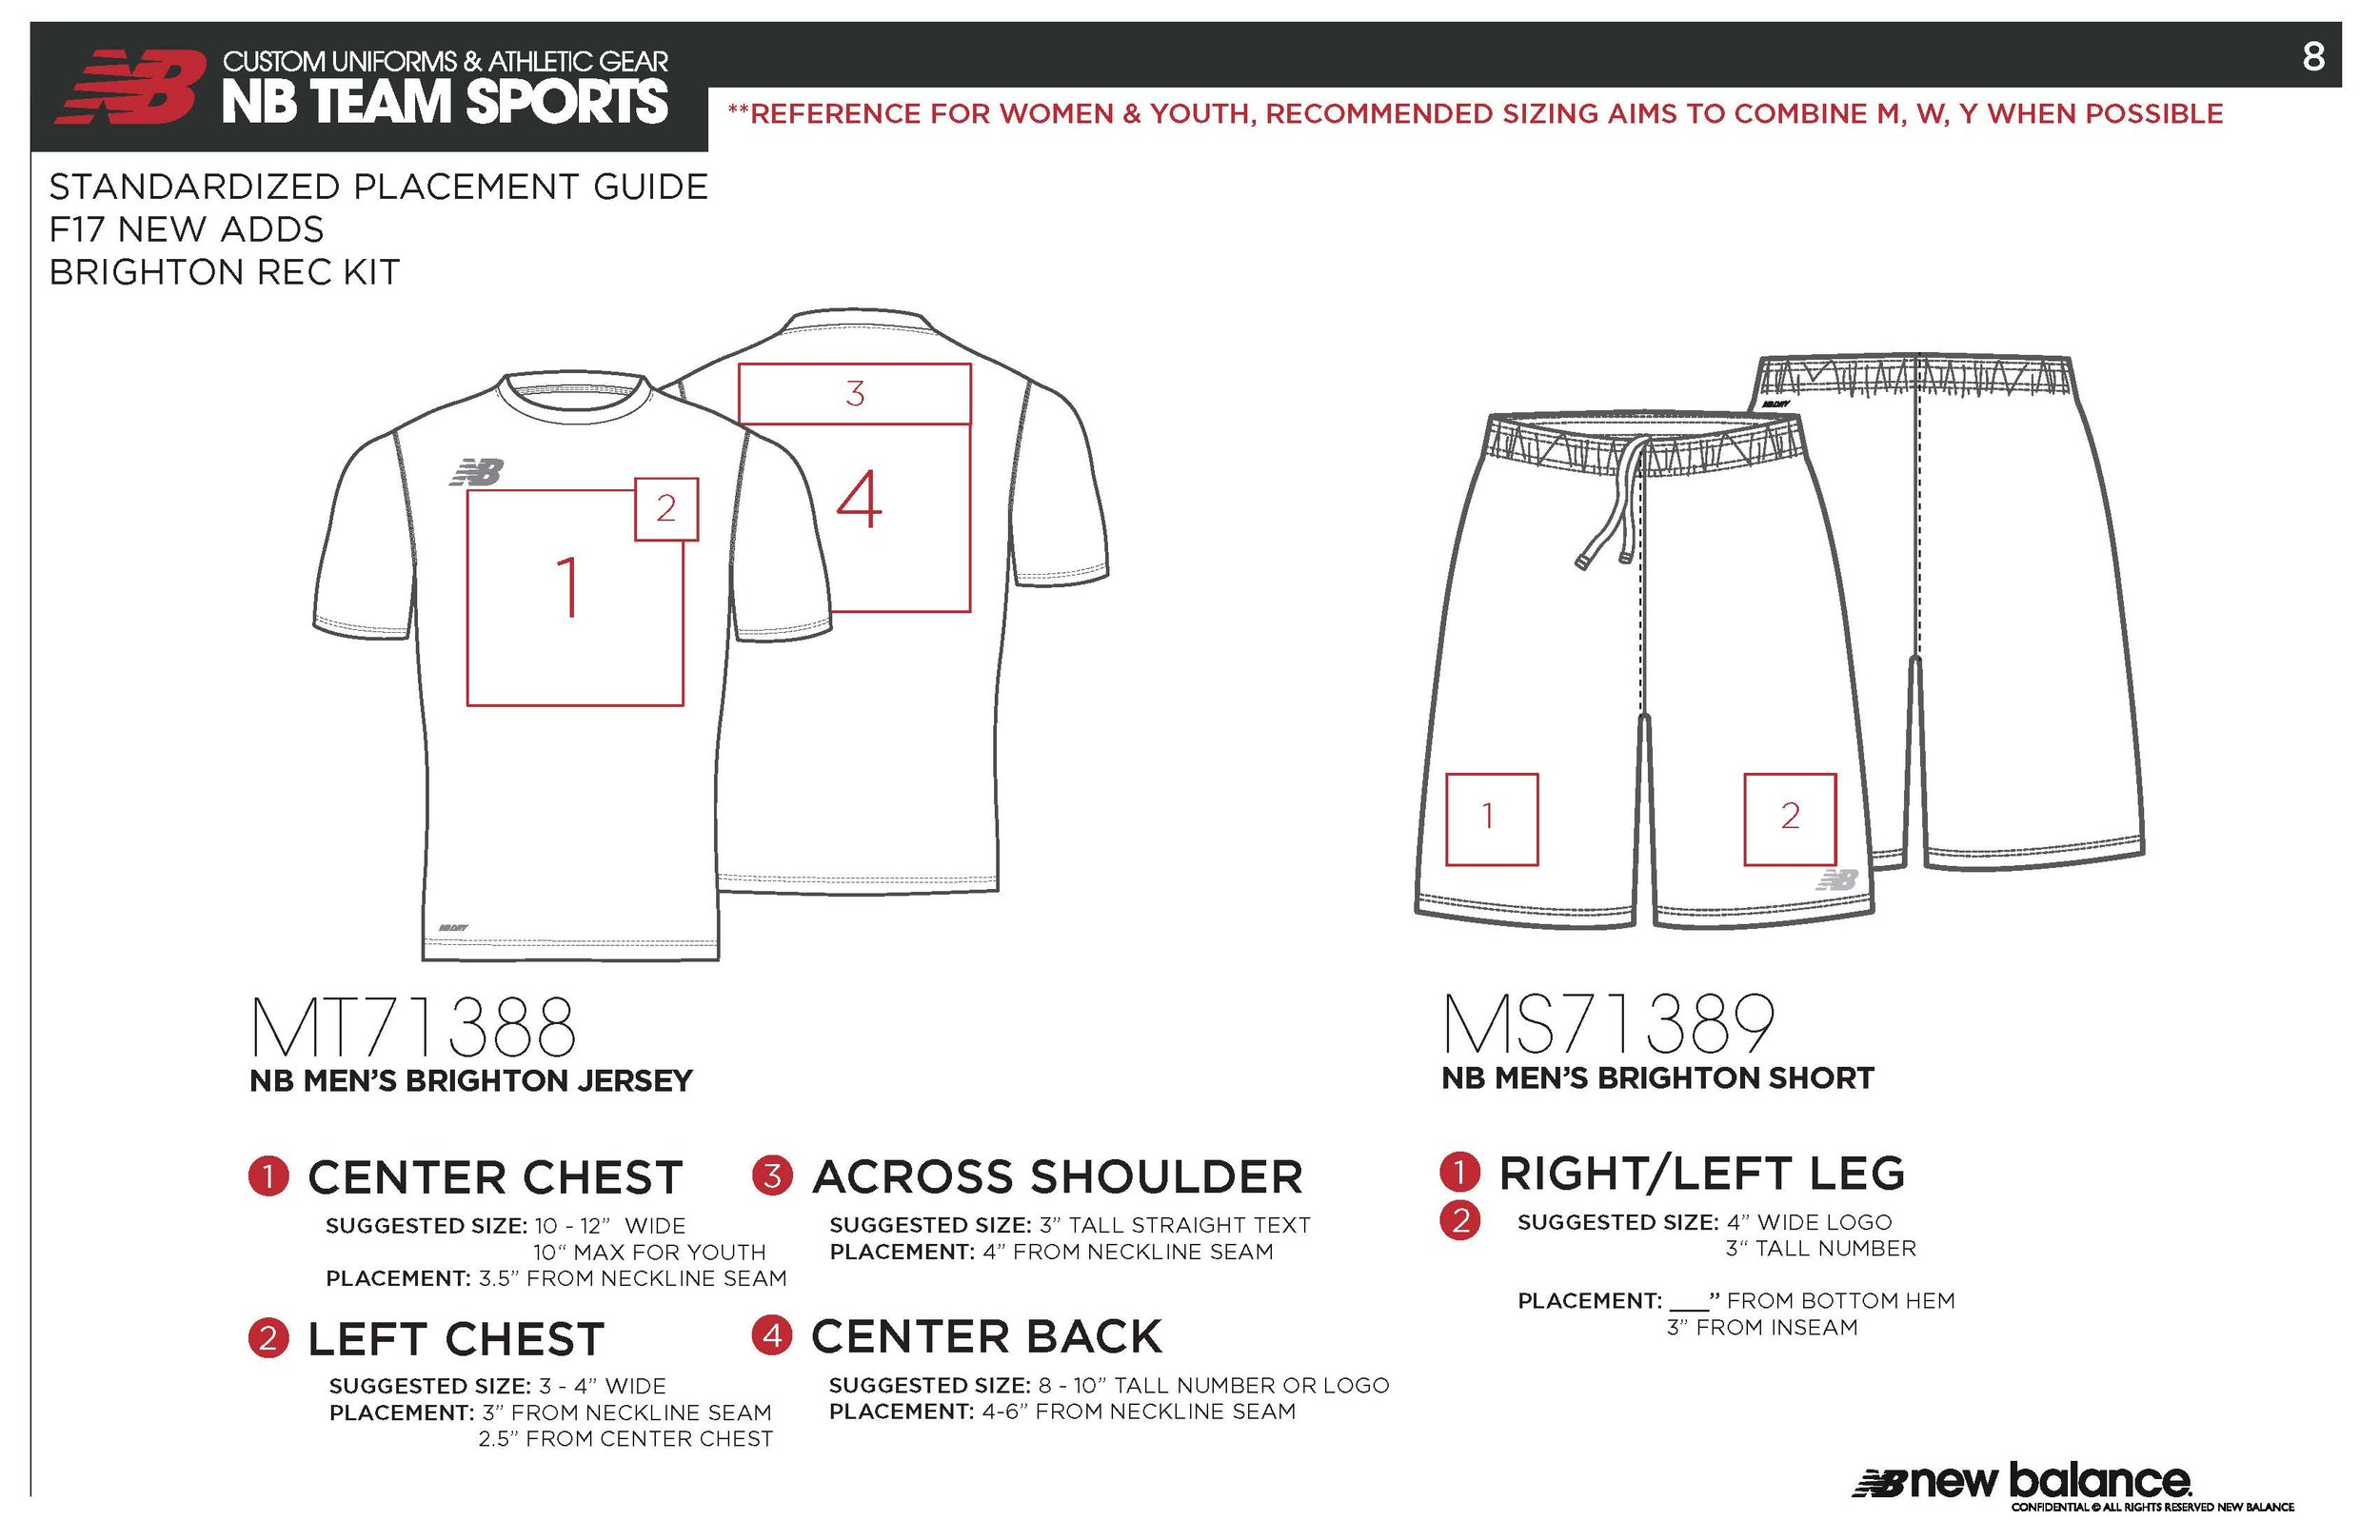 TEAMWEAR_Standardized Placement Guide Final_Page_8.jpg